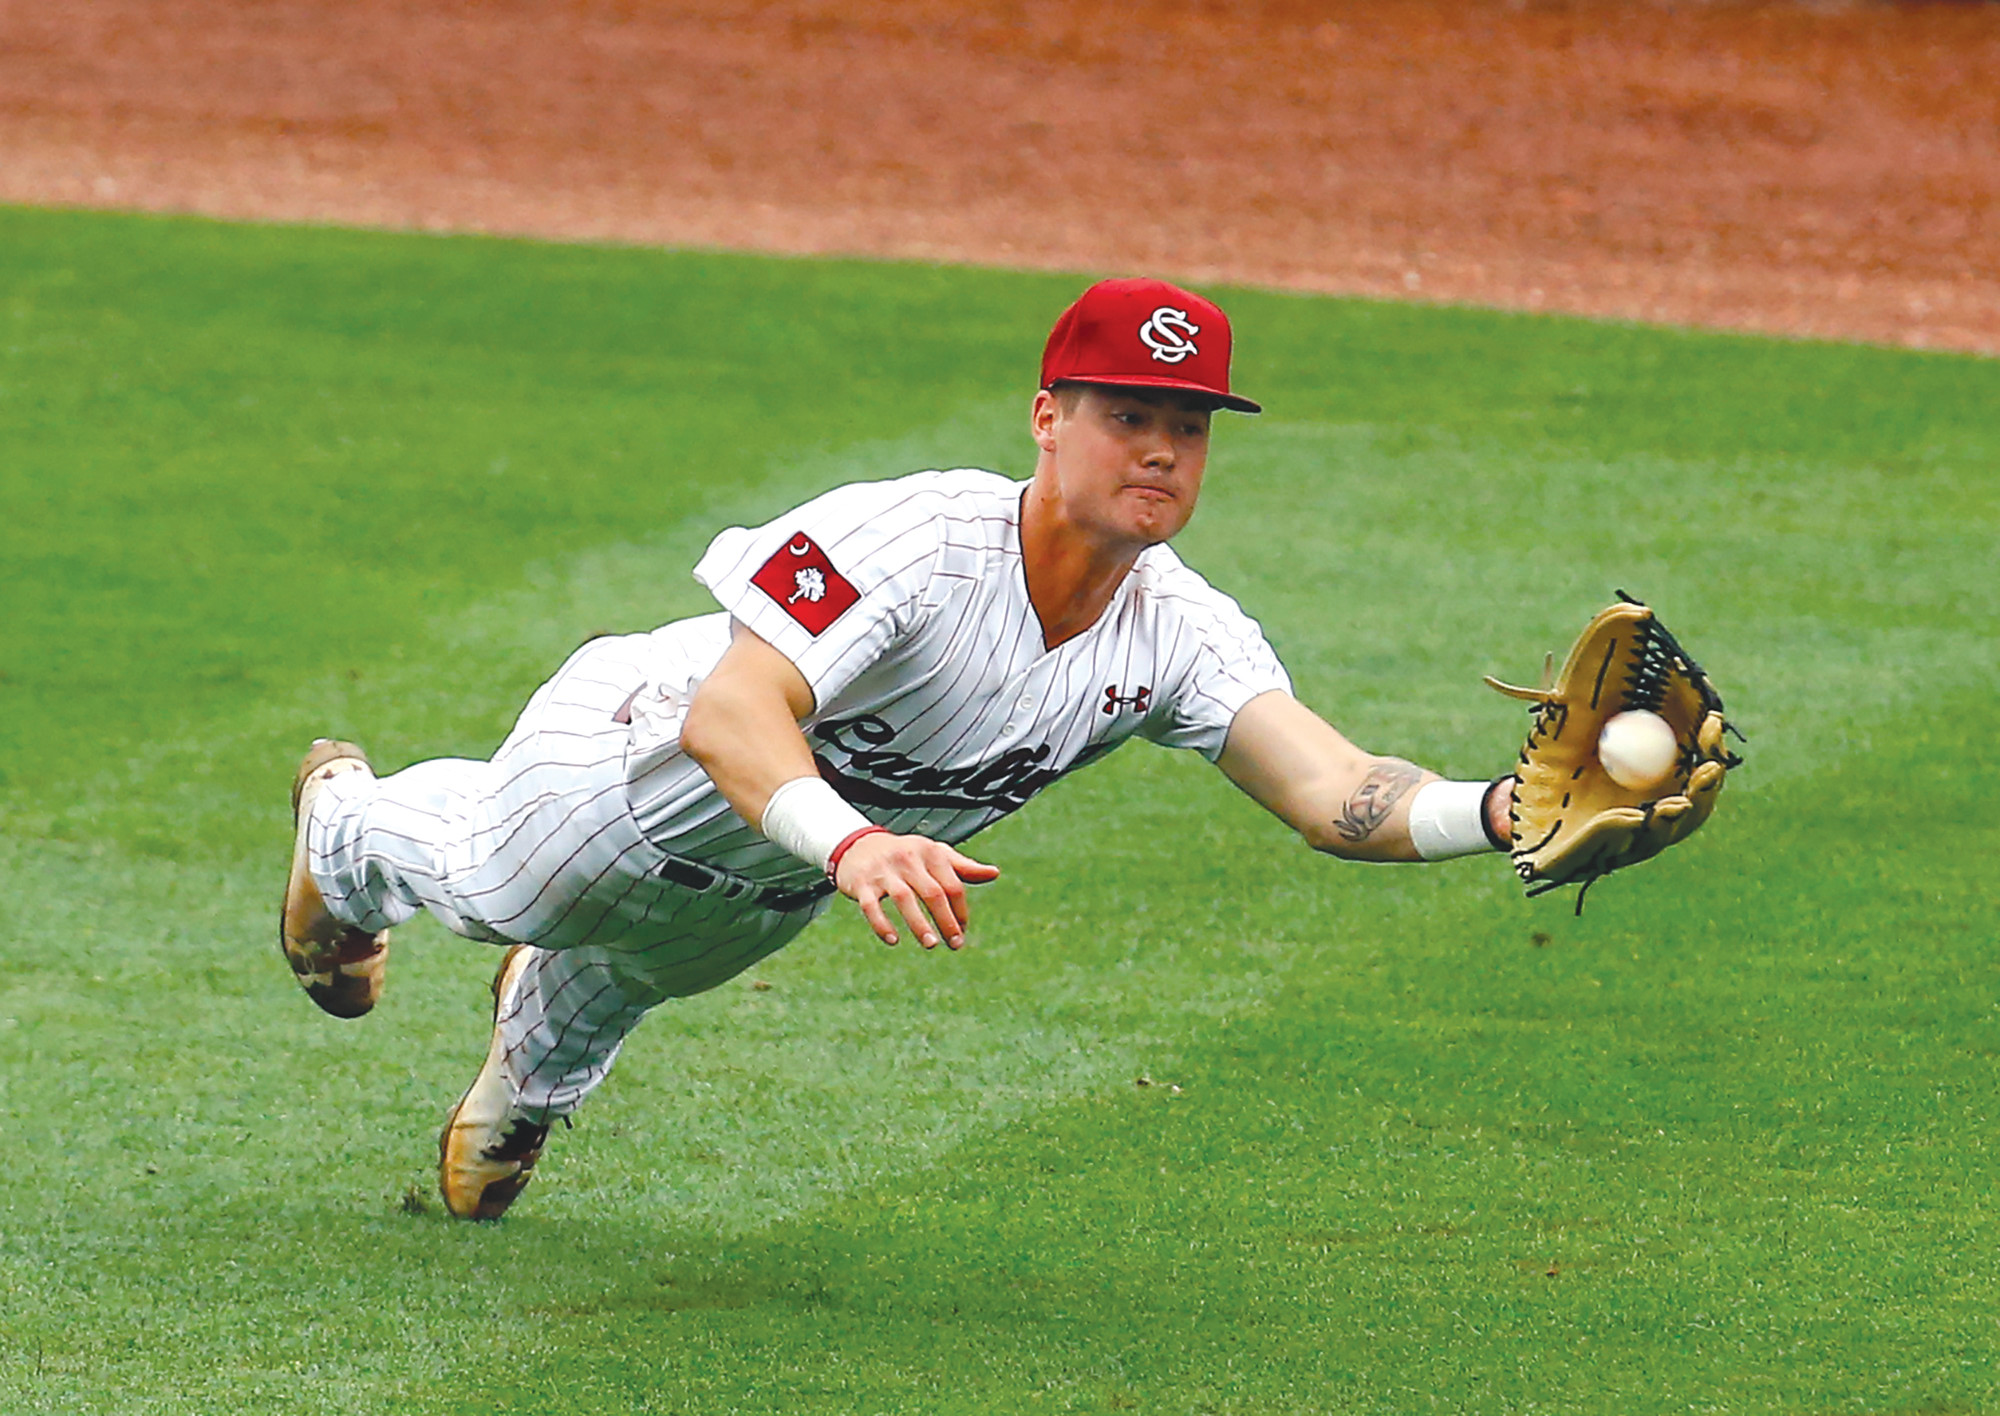 South Carolina outfielder Jacob Olson (7) makes a diving catch for the out of LSU's Zach Watson (9) during the ninth inning of a Southeastern Conference Tournament NCAA college baseball game Thursday in Hoover, Alabama.